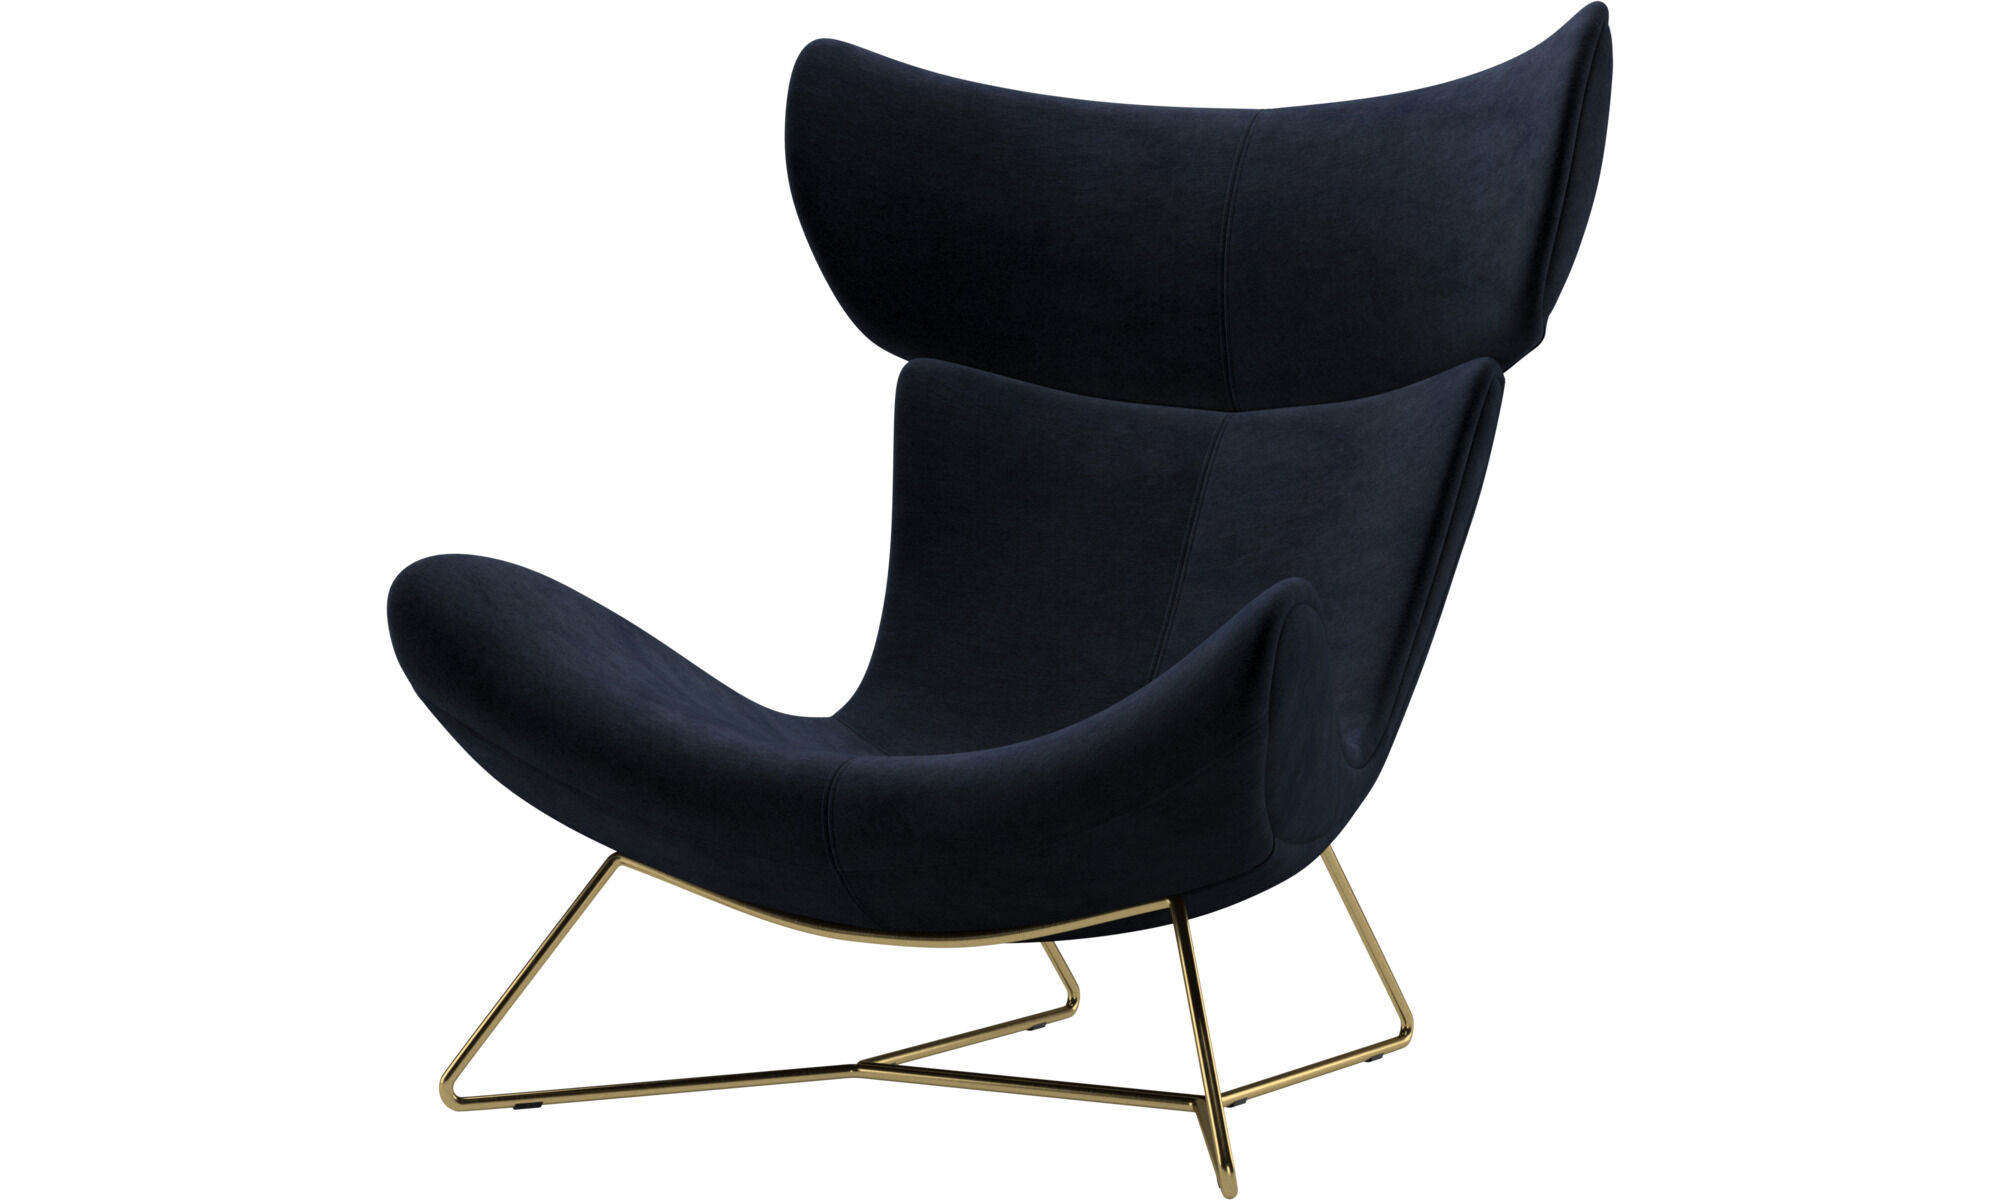 Armchairs - Imola chair - Blue - Fabric  sc 1 st  BoConcept : boconcept chaise - Sectionals, Sofas & Couches